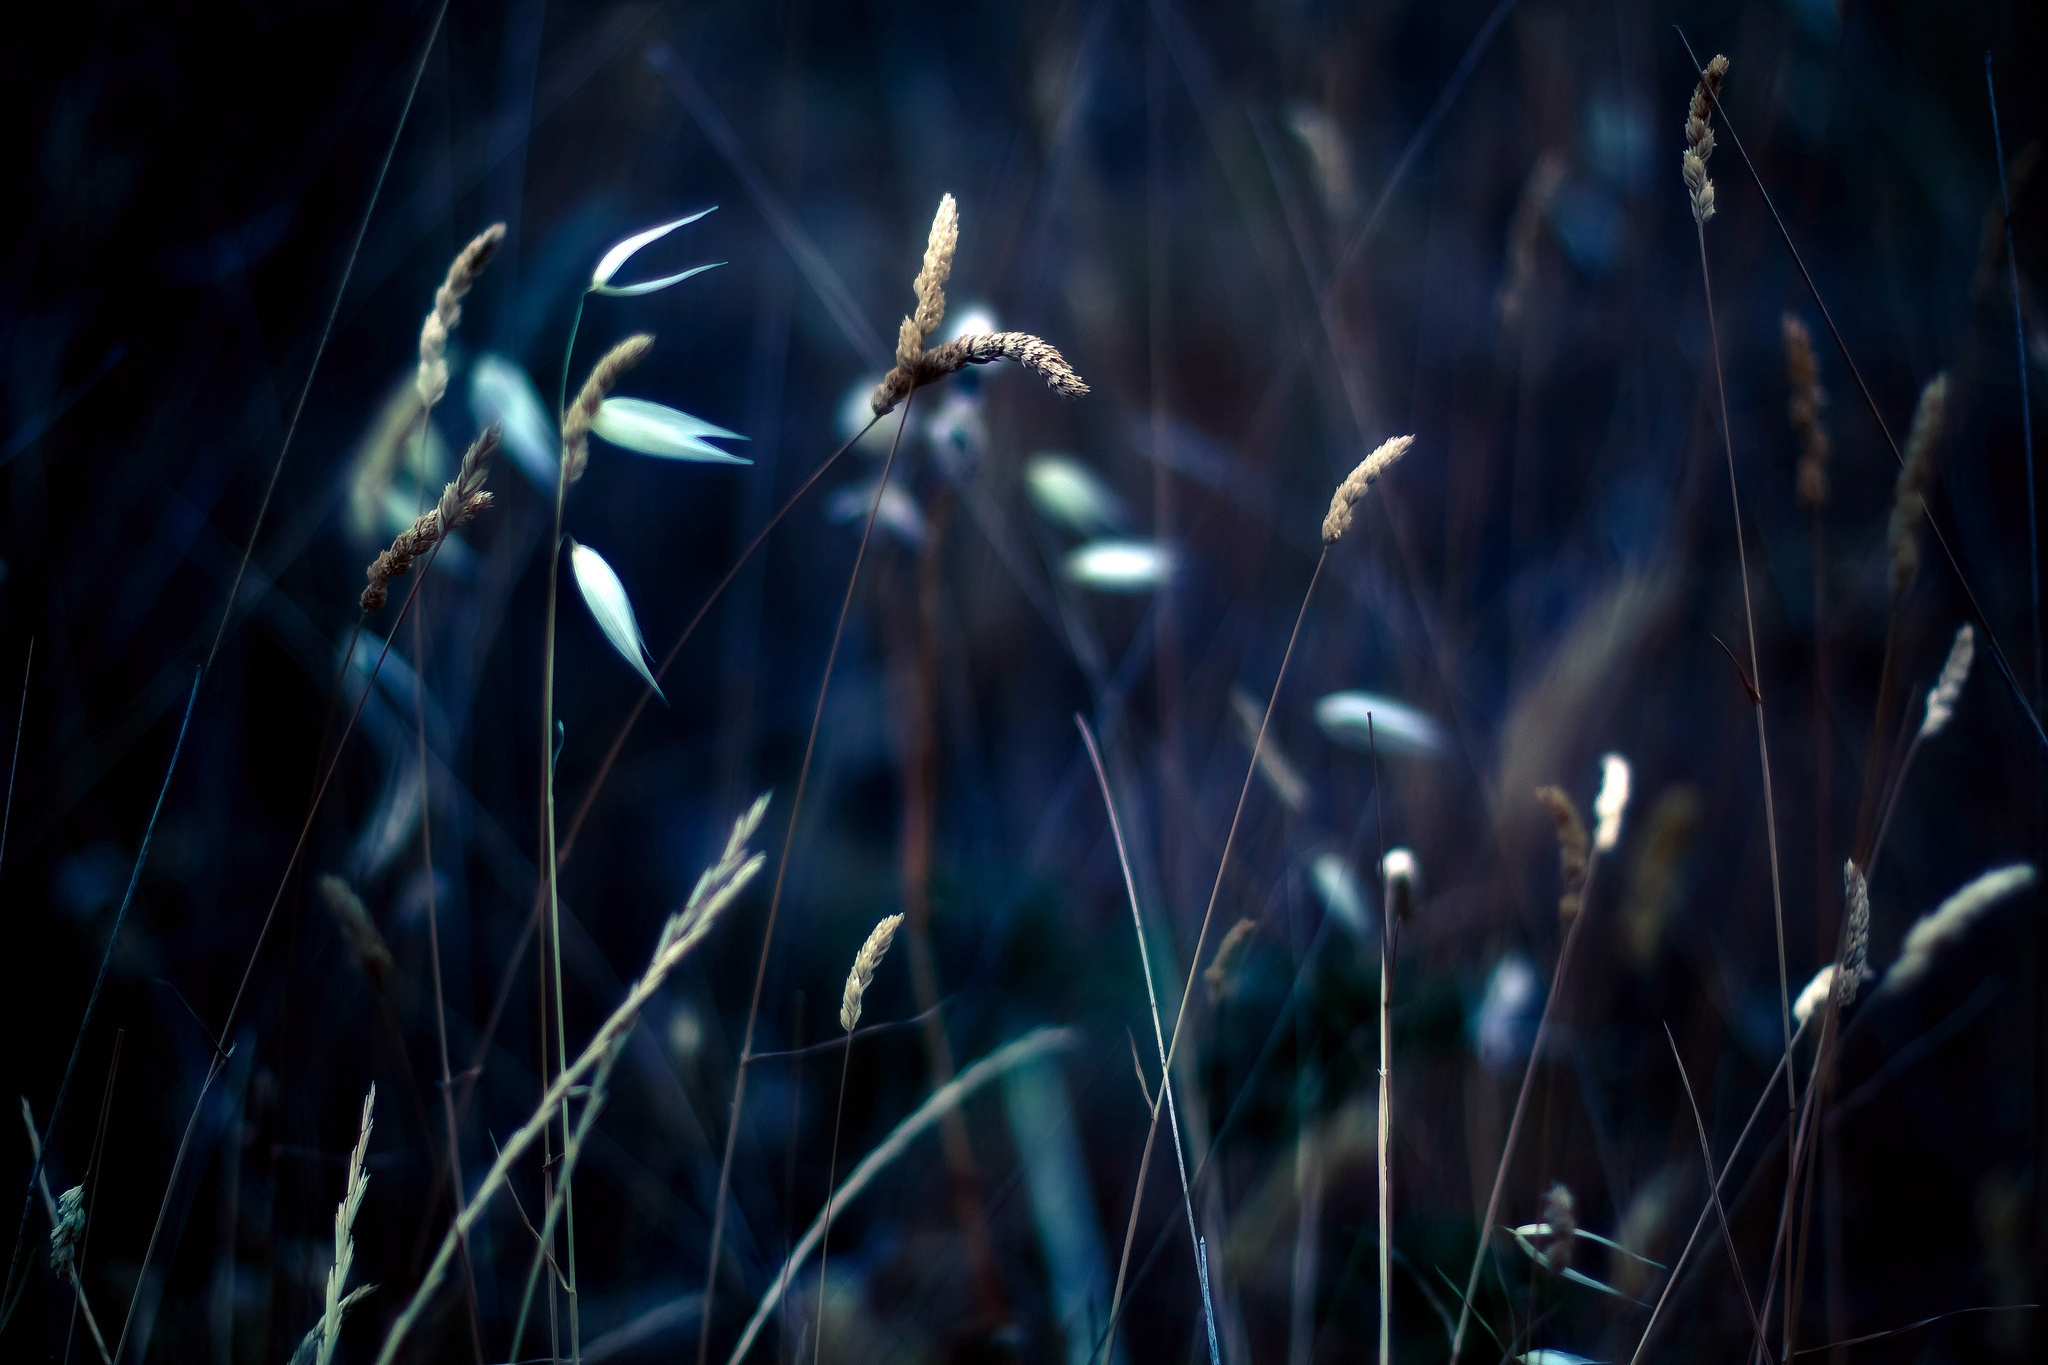 107216 download wallpaper Grass, Plant, Macro, Shine, Light screensavers and pictures for free